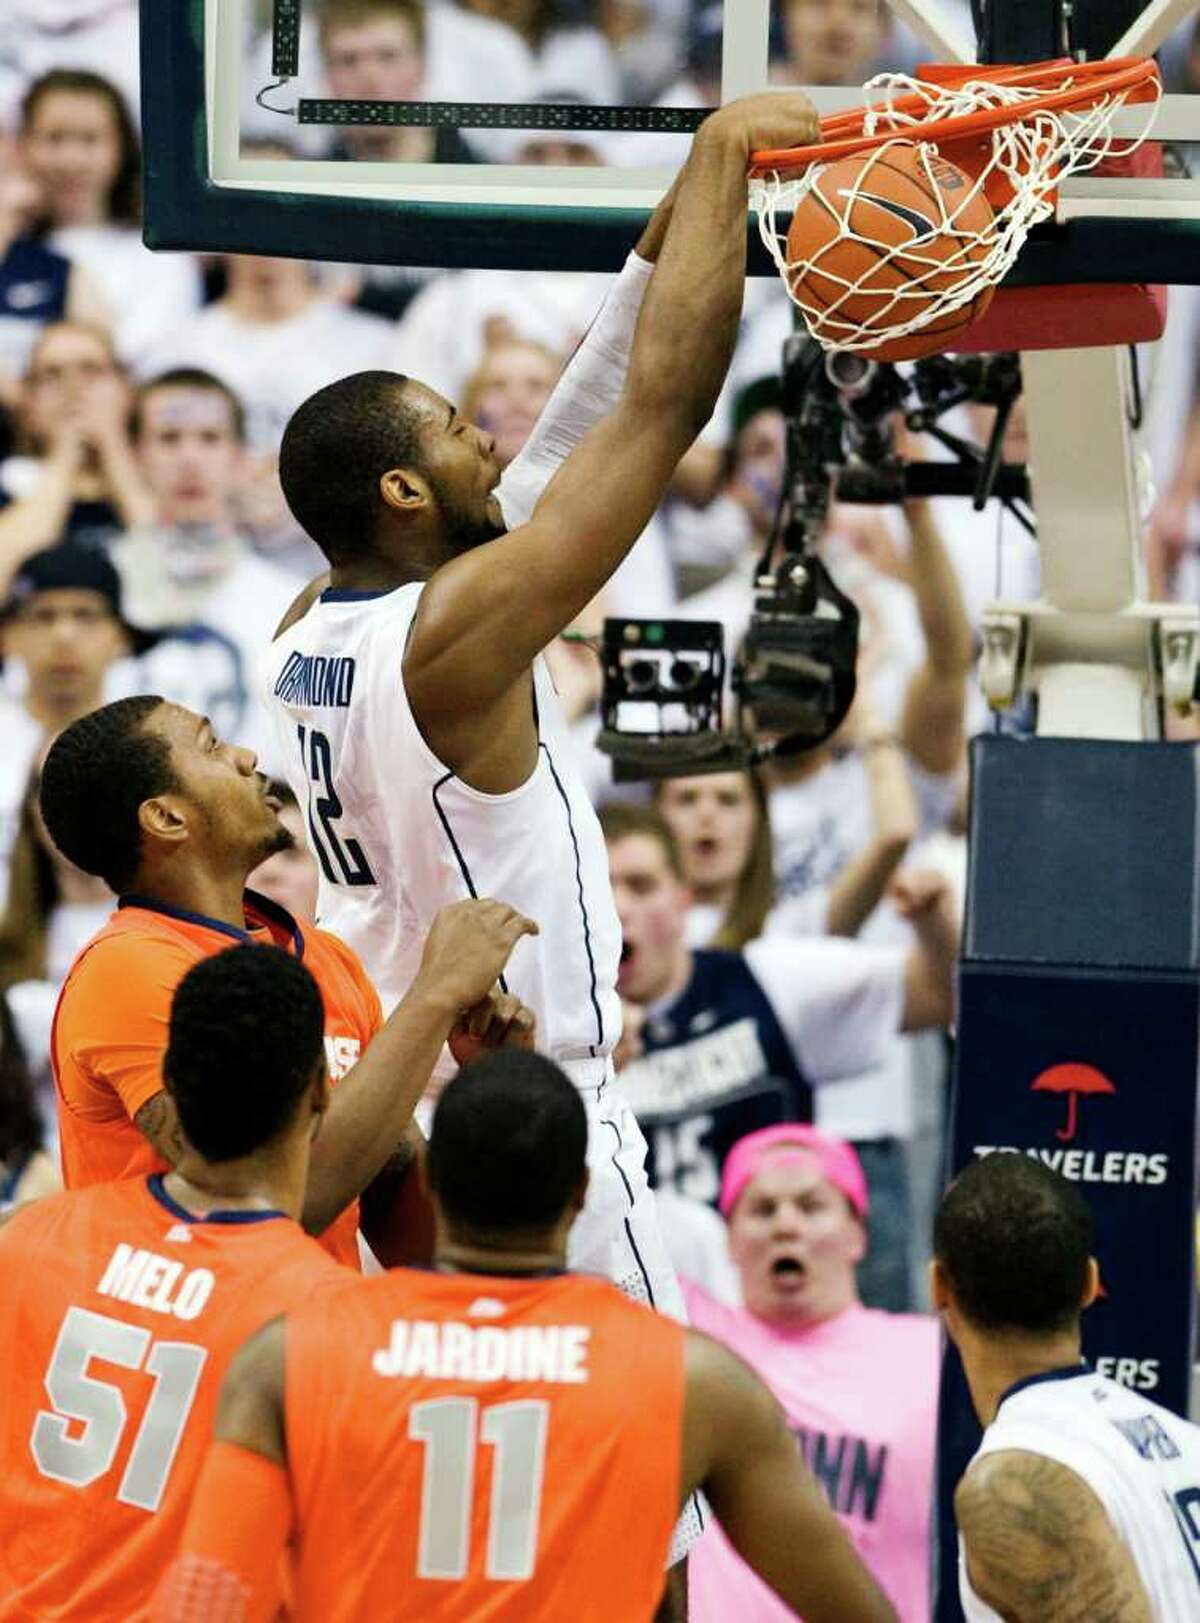 Connecticut's Andre Drummond dunks the ball in the first half of an NCAA college basketball game against Syracuse in Storrs, Conn., Saturday, Feb. 25, 2012. (AP Photo/Jessica Hill)